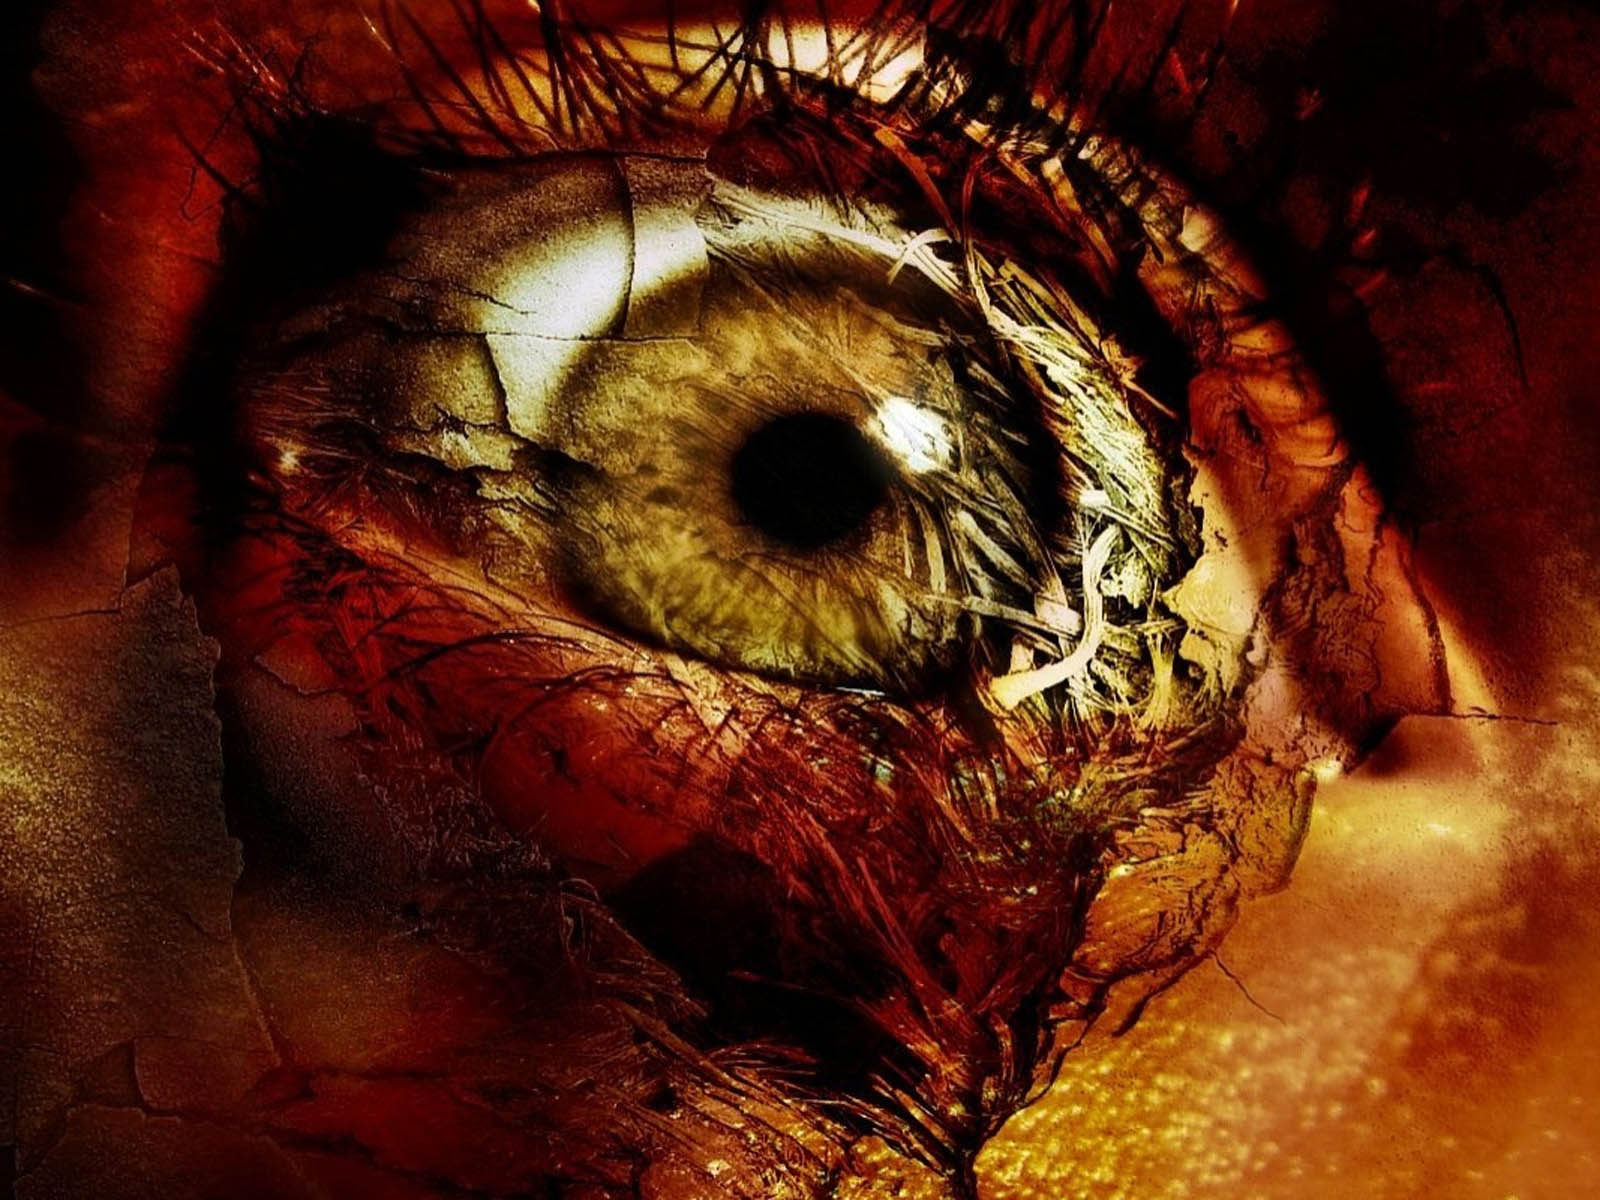 Tag Horror Eye Wallpapers Images Photos Pictures and Backgrounds 1600x1200